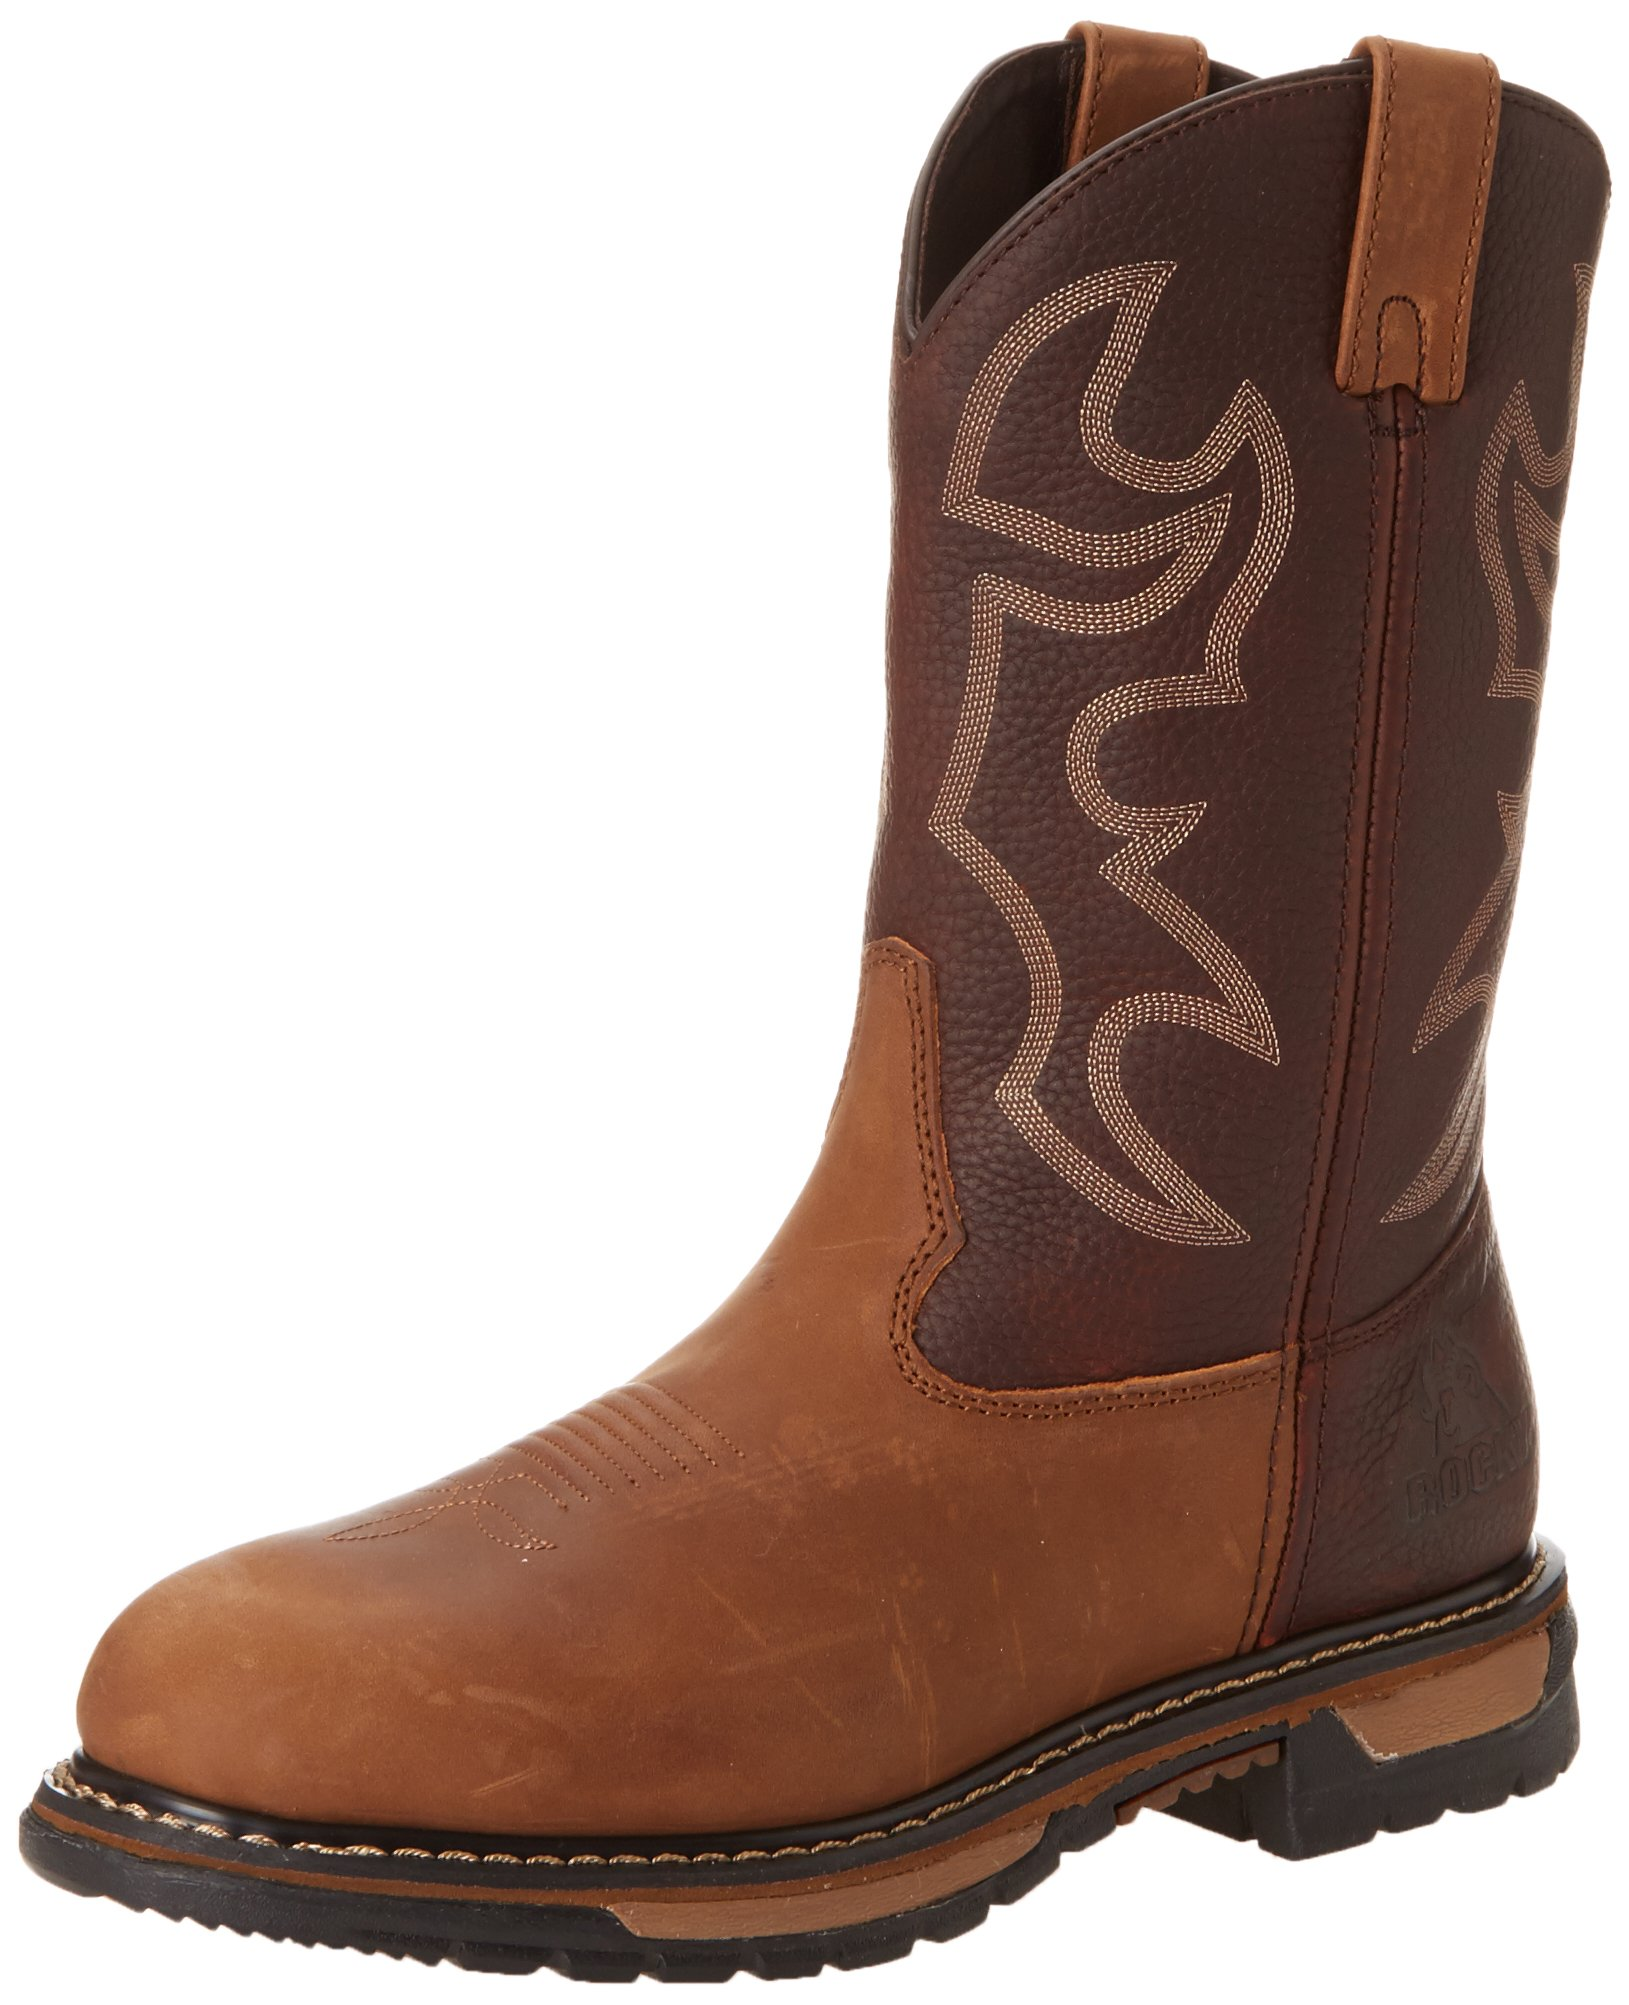 Rocky Men's Original Ride Bridal Work Boot,Crazy Horse,9 W US